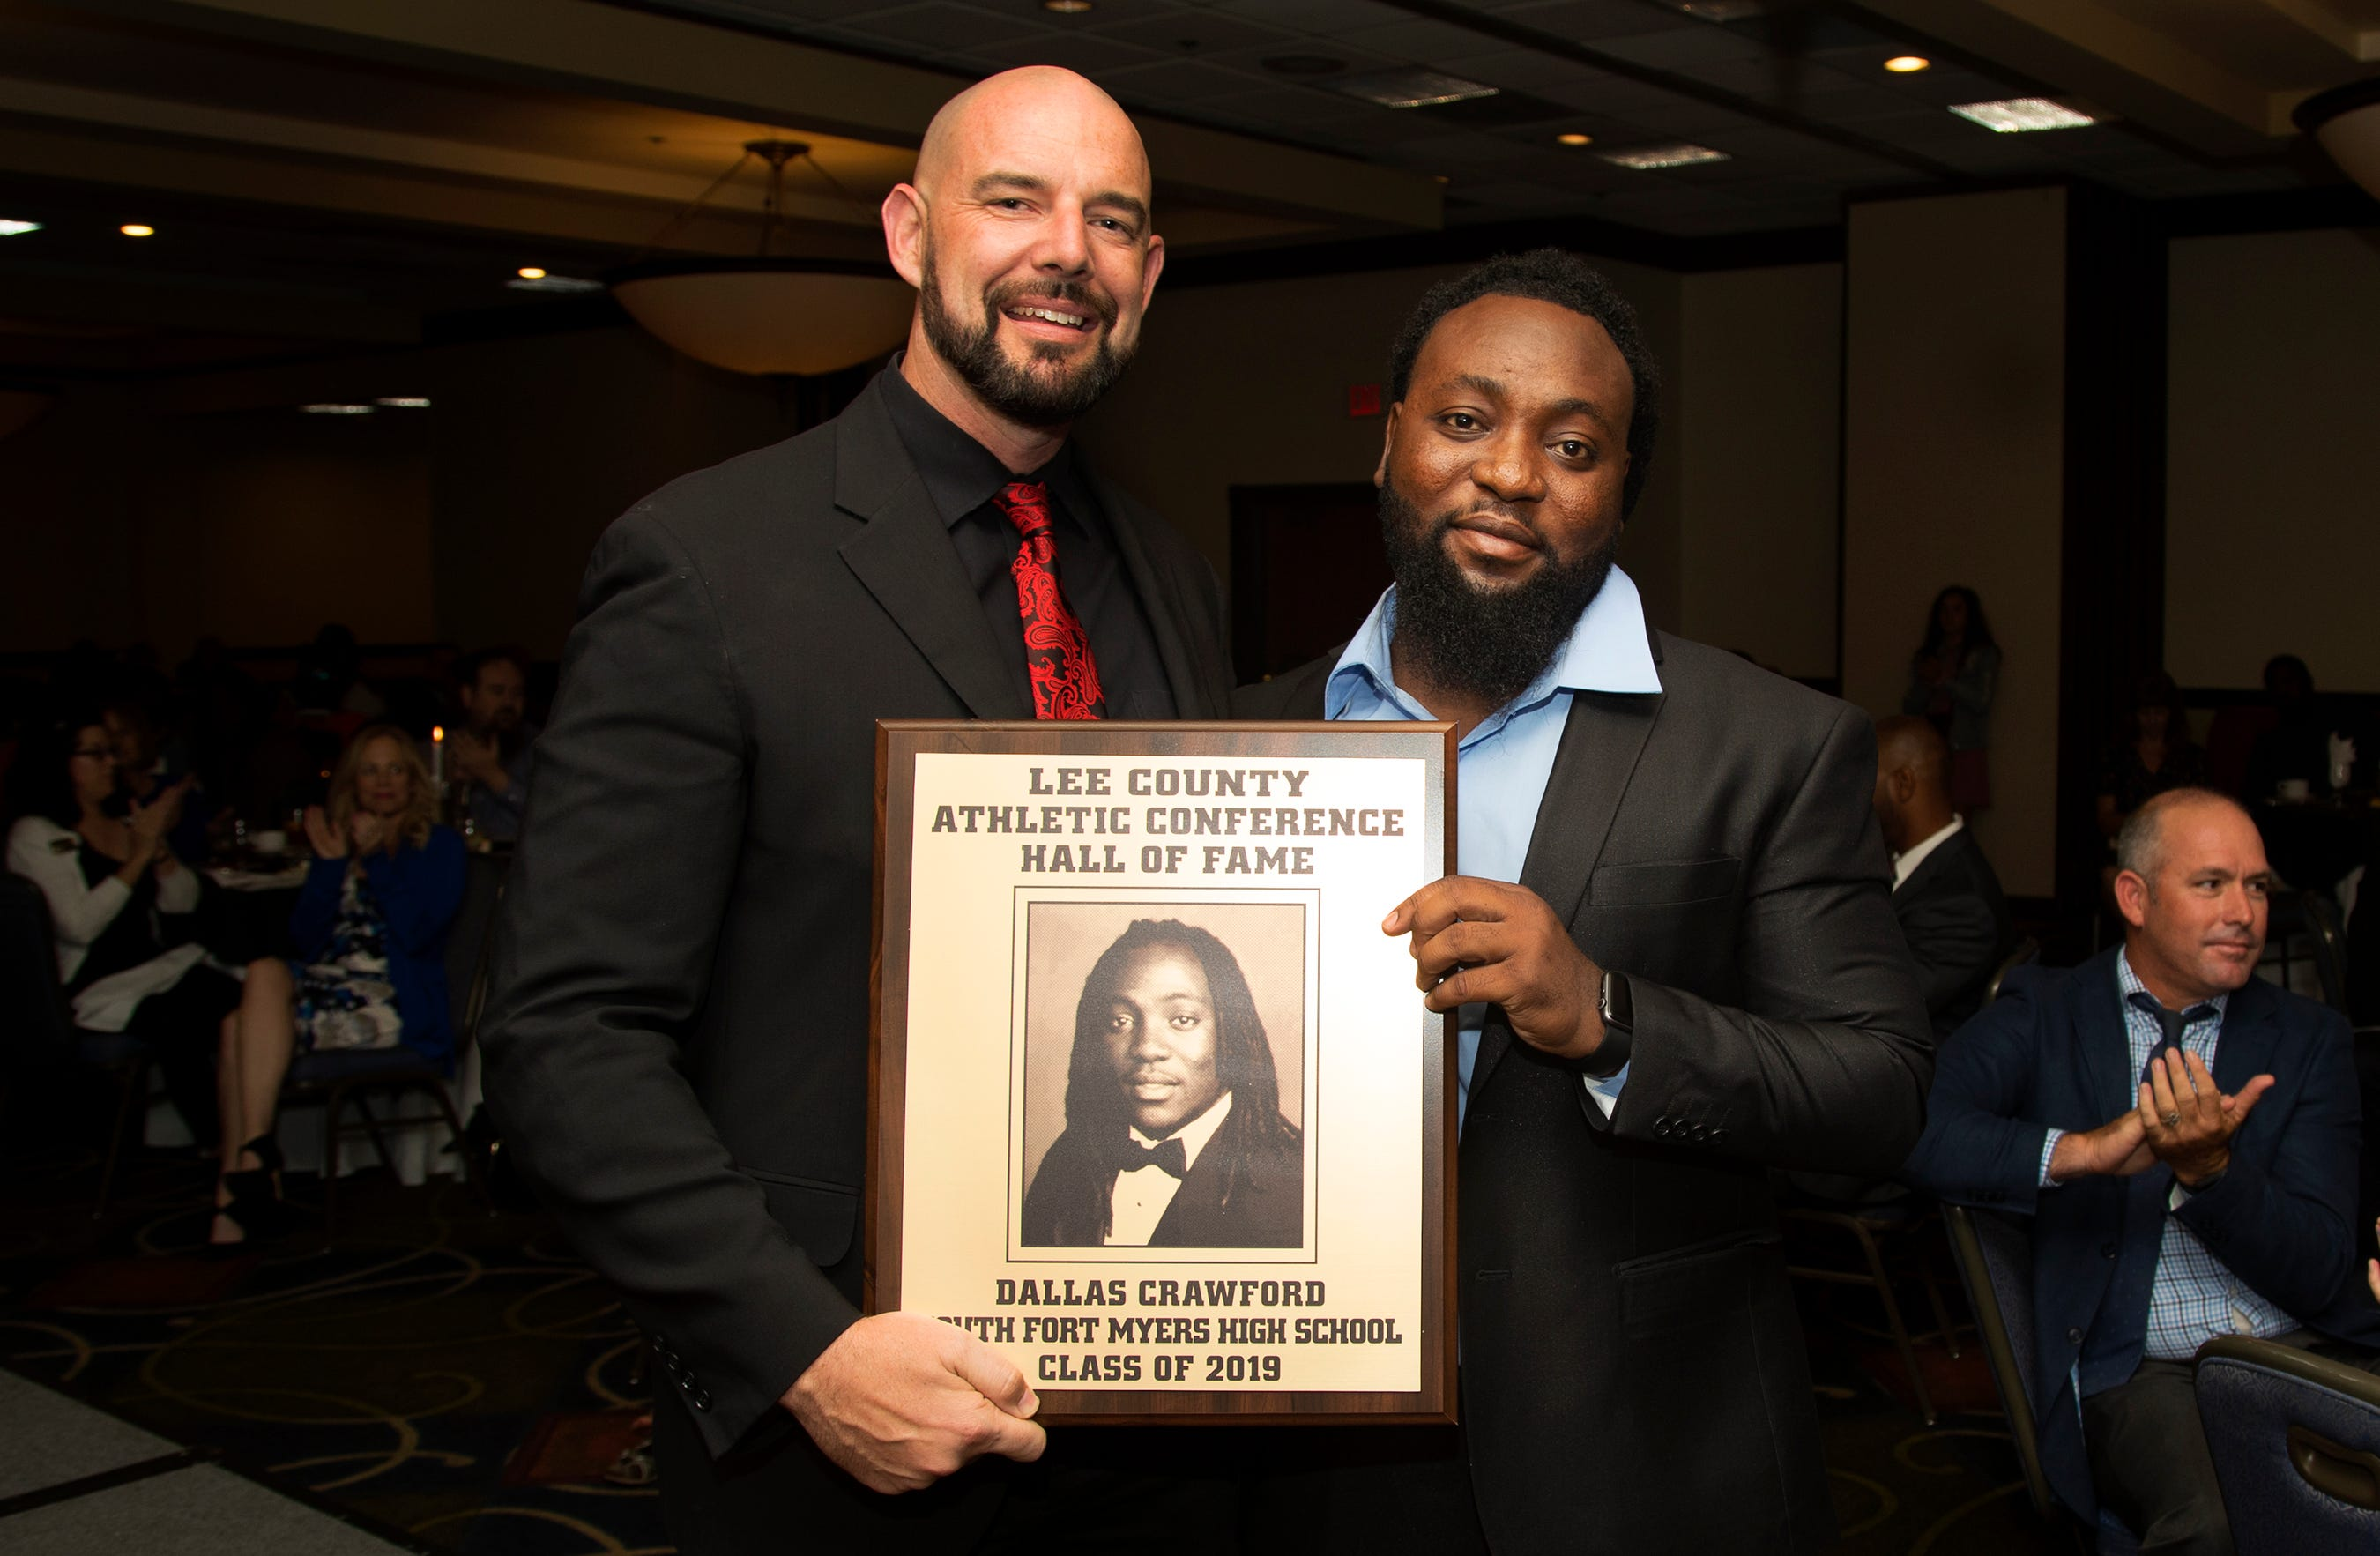 Dallas Crawford, a 2011 South Fort Myers High School graduate, is inducted into the Lee County Athletic Conference Hall of Fame on Thursday in Fort Myers. Crawford played football at South. South Fort Myers High School principal Ed Mathews, left, is among Crawford's supporters.